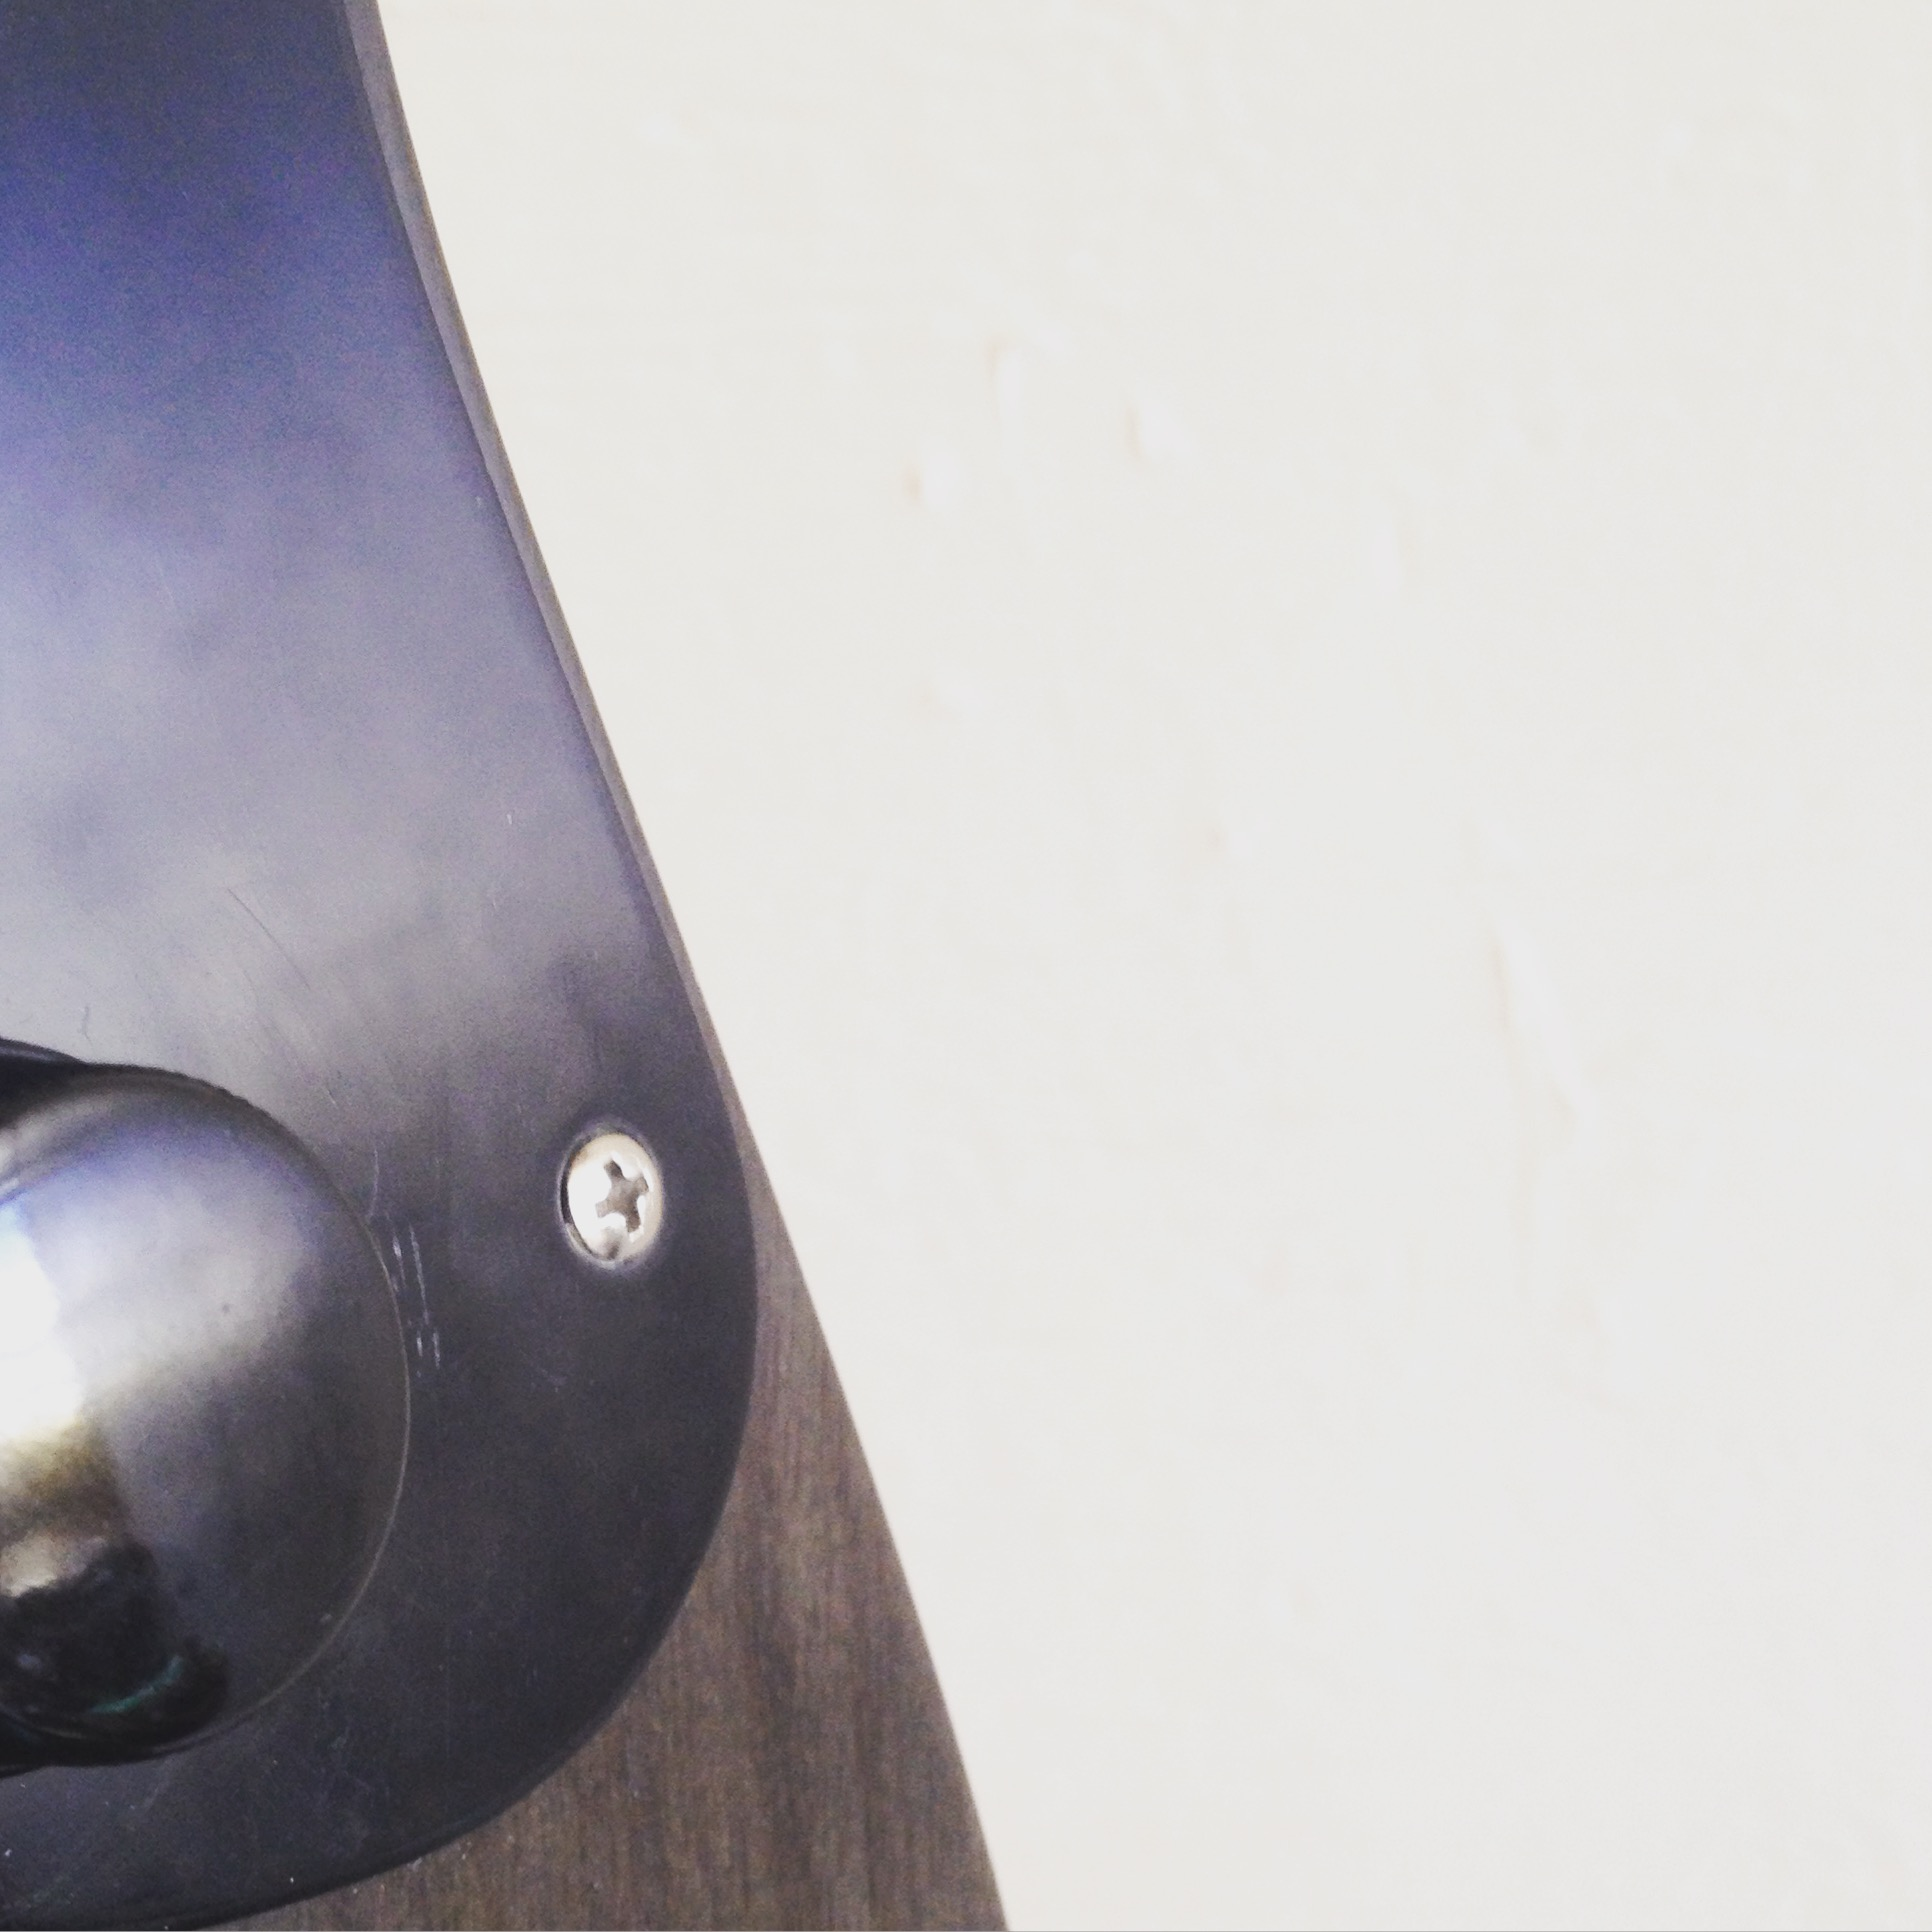 a knob on the Creston fretless